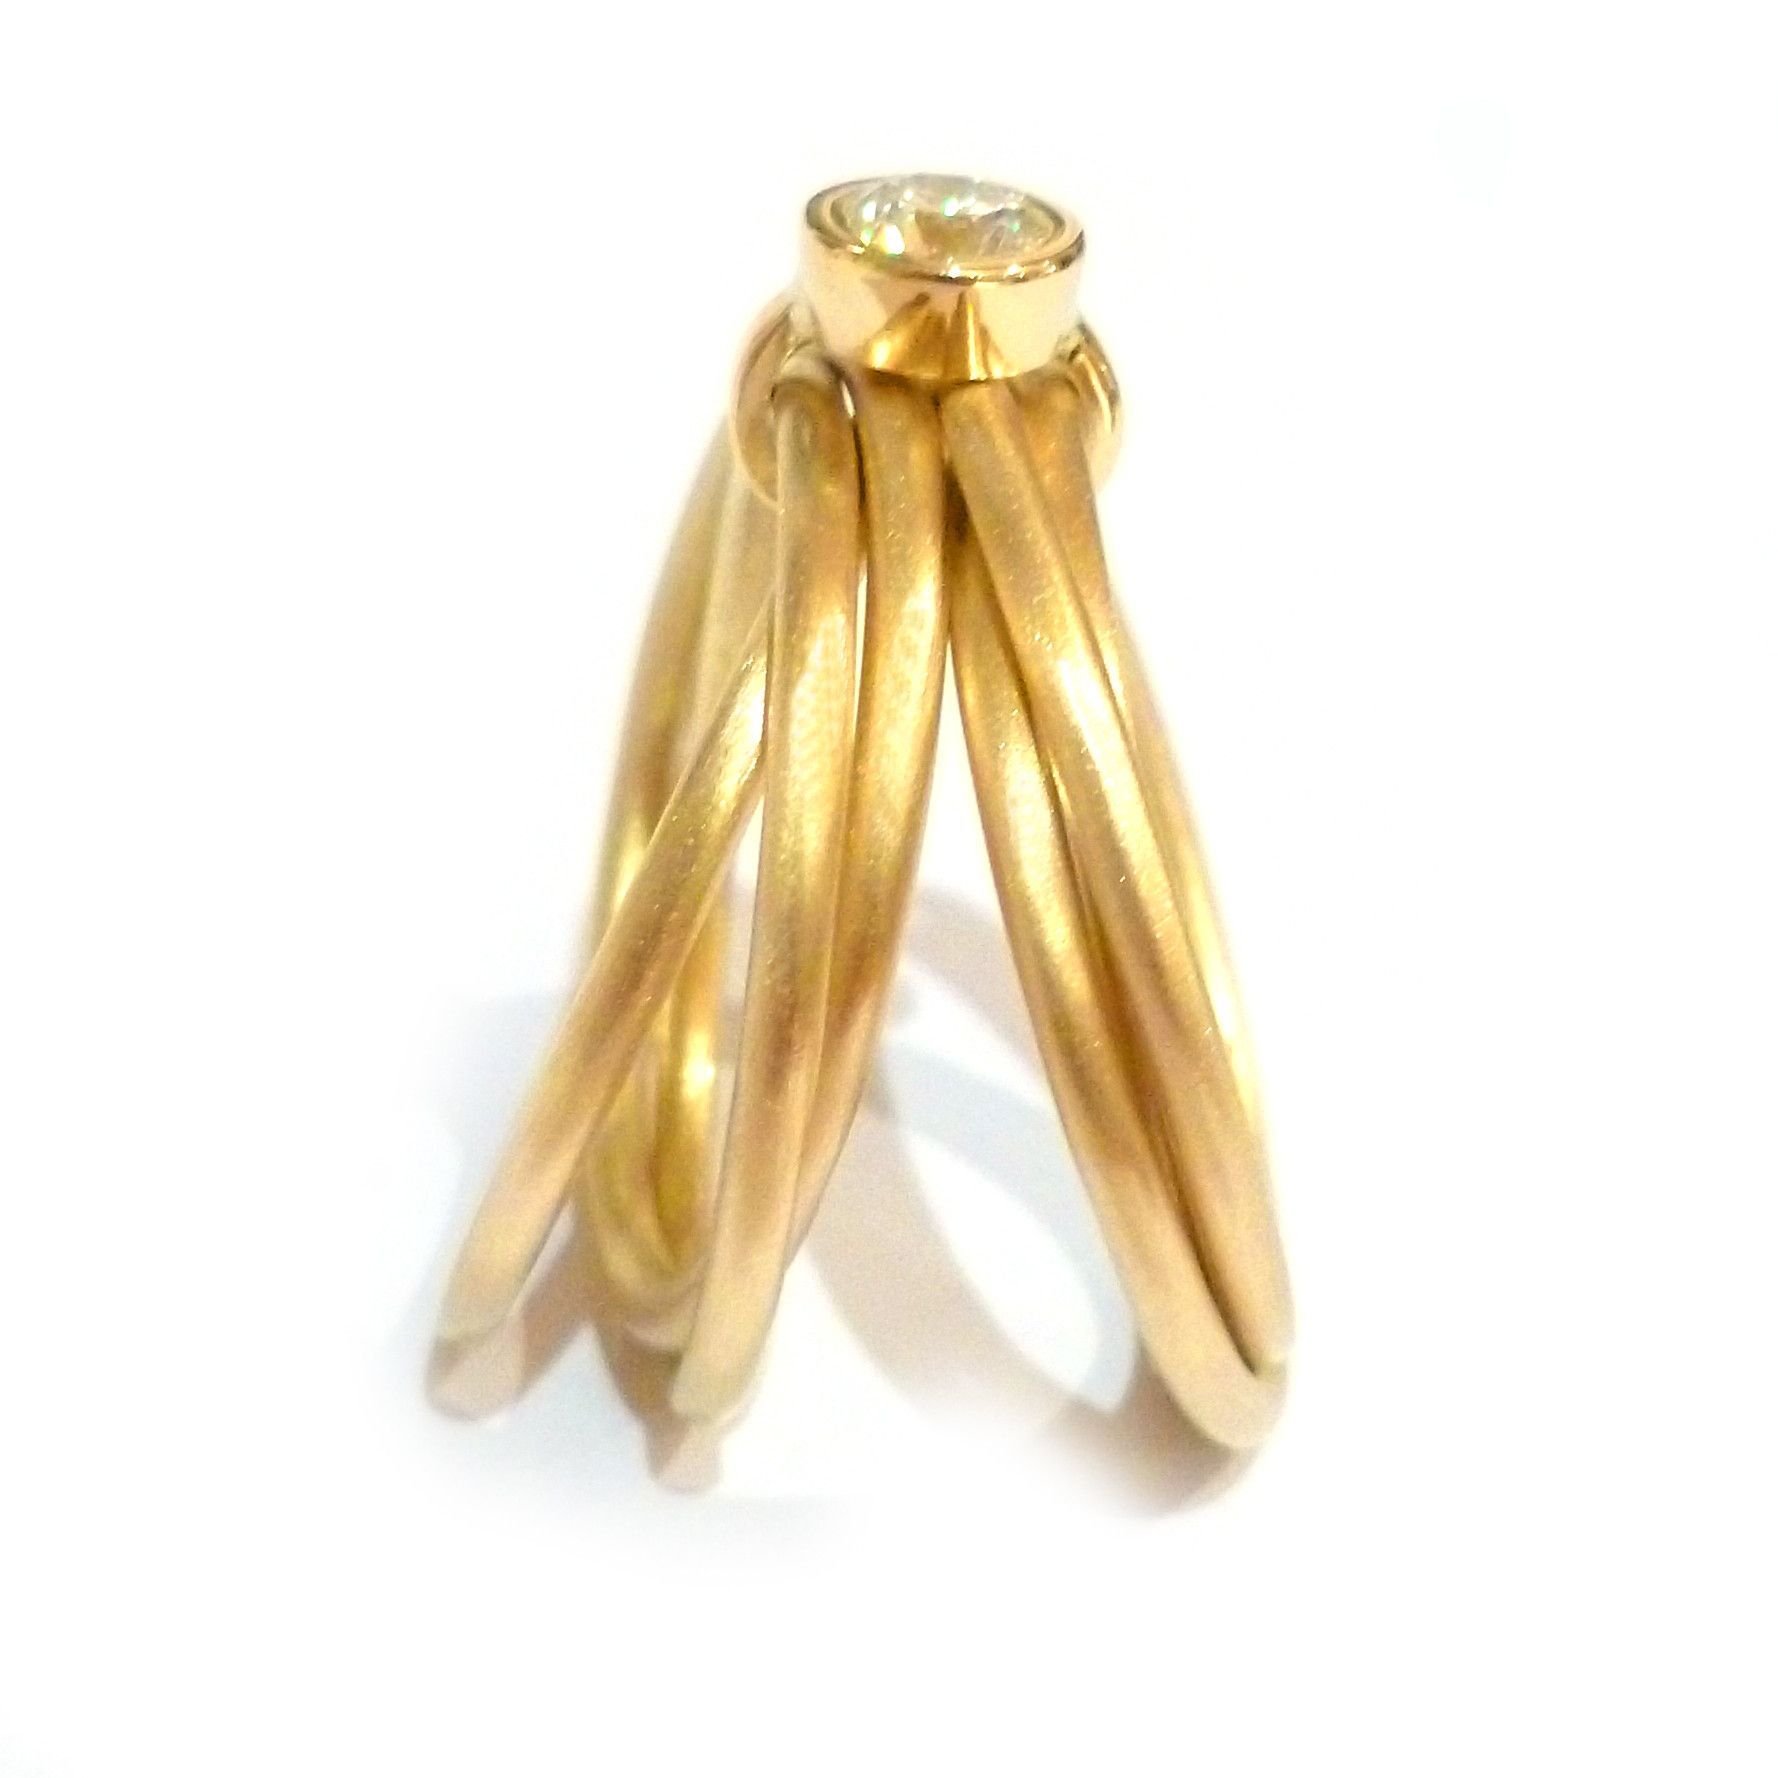 Stunning k Gold band Russian style ring rd